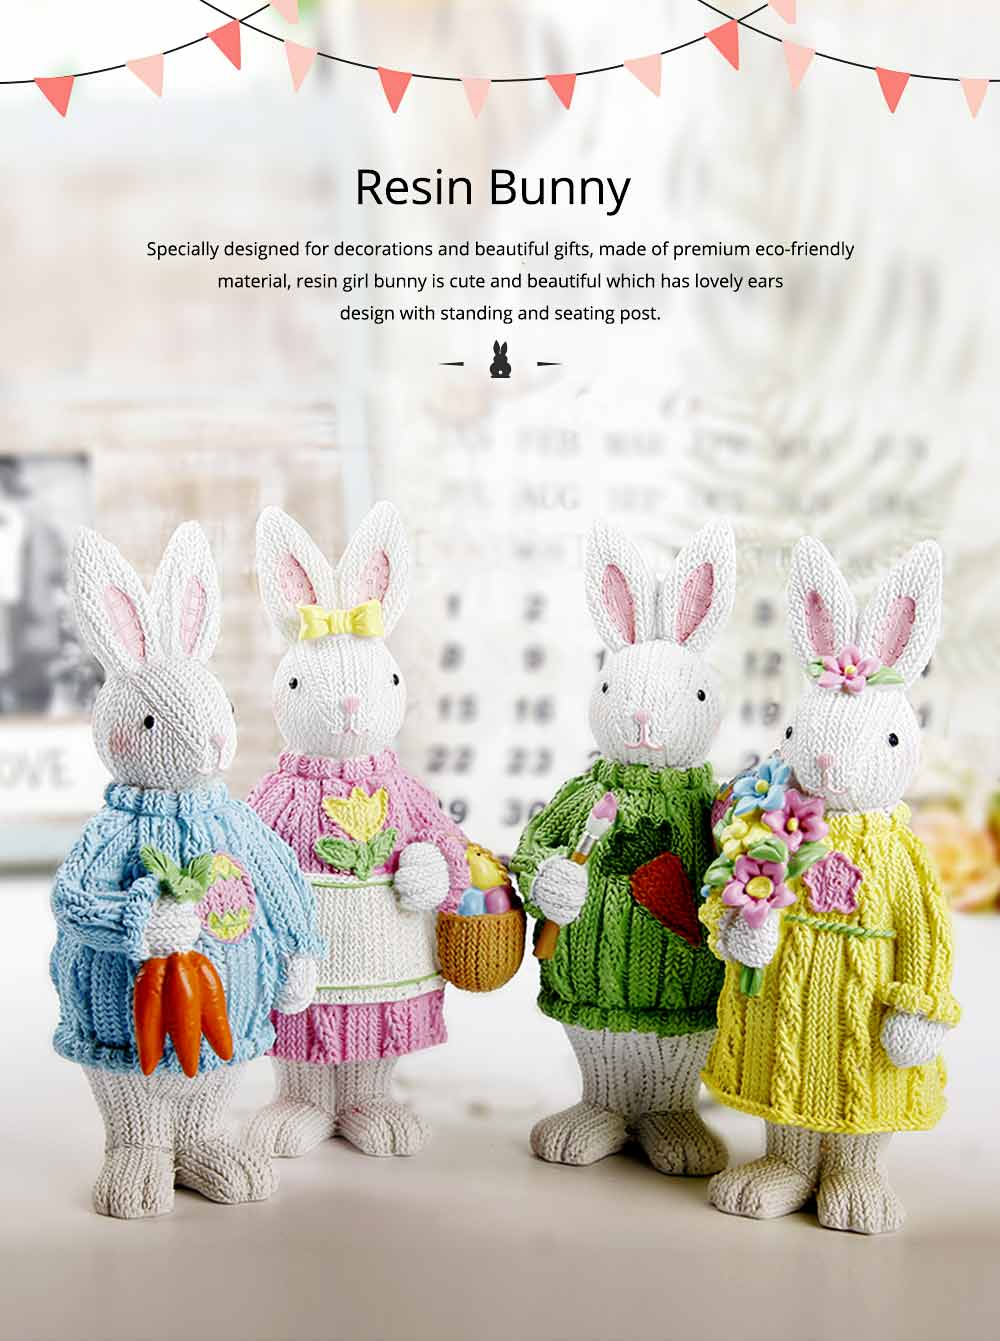 Resin Easter Hand-Painted Bunny with Seating Post for Any Room, Shelf or Windowsill, Decorative Centerpiece 0